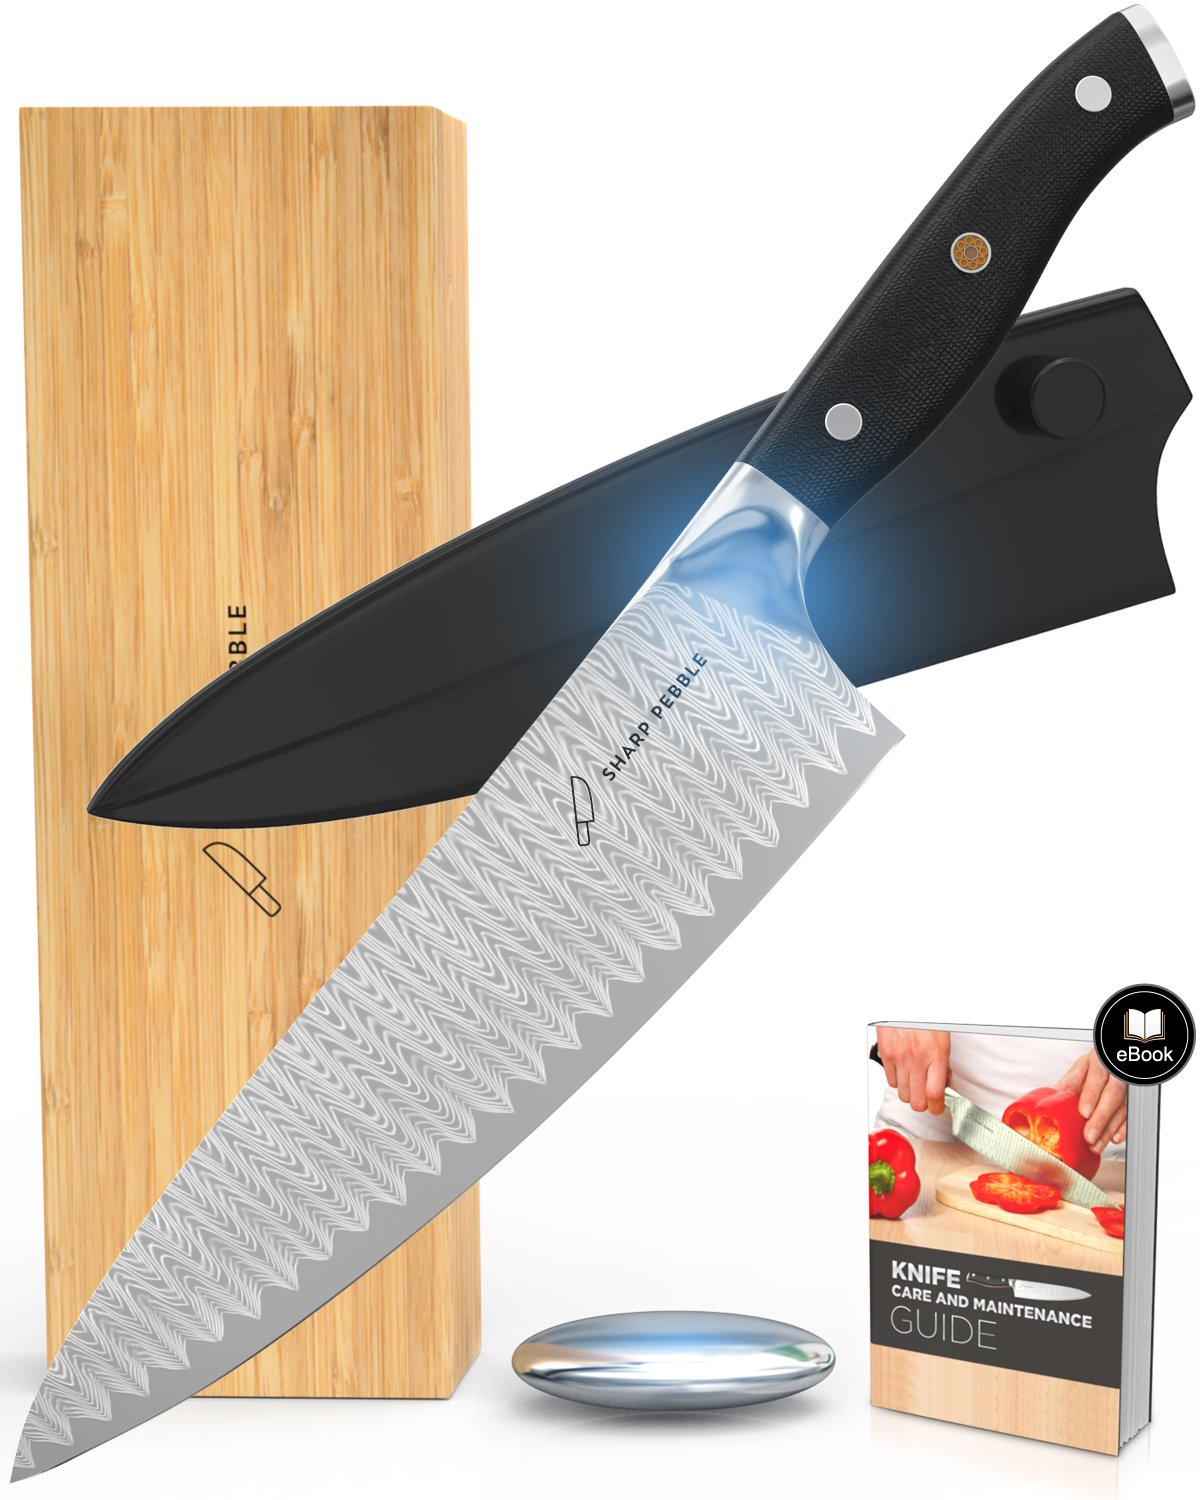 Sharp Pebble Chefs Knife 8 Inch | Professional Japanese Damascus Knife VG10 Stainless Steel | Sheath, Bamboo Box, Odor Removal Soap & Care eBook